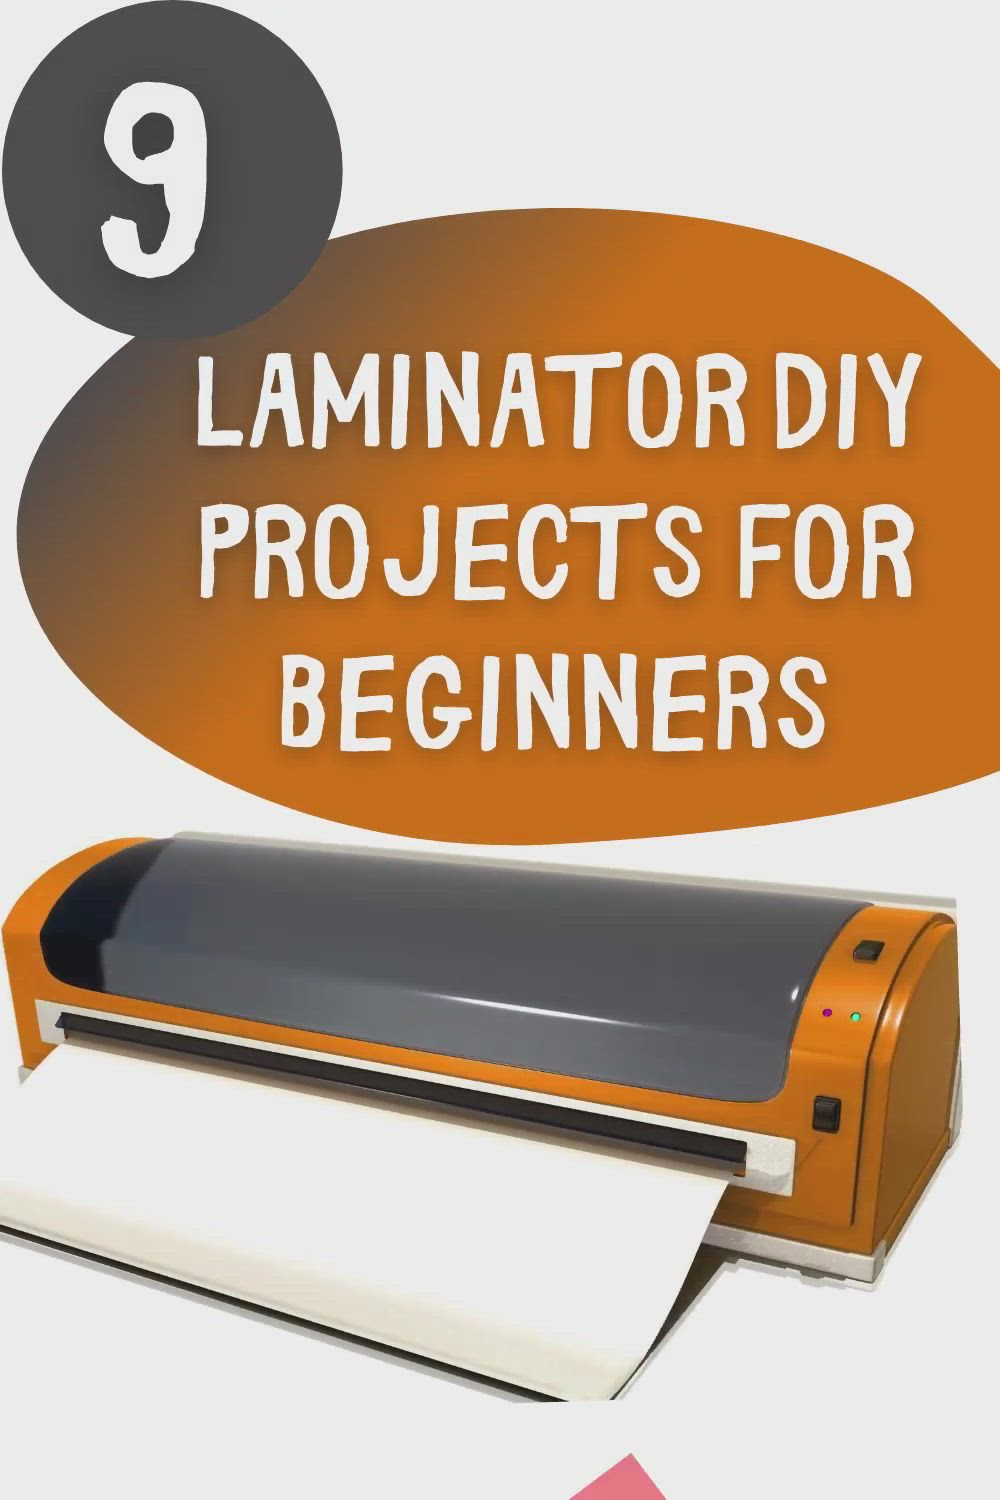 10 Best Laminator Reviews For School Teachers And Home Use 2019 School Teacher Laminators Teacher